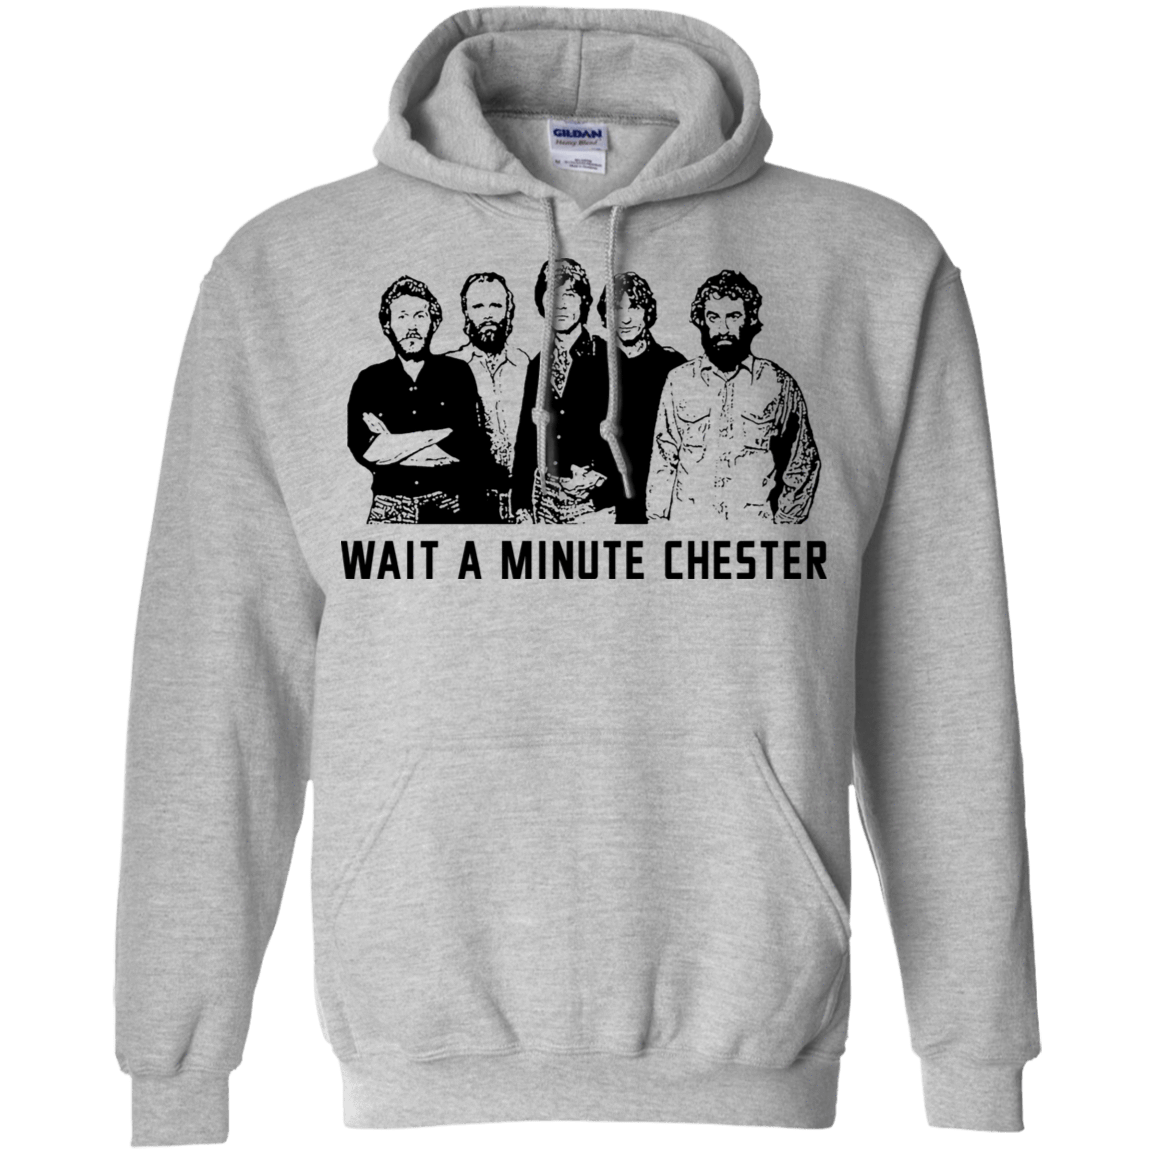 Wait A Minute Chester The Band Version 541-4741-73889089-23111 - Tee Ript